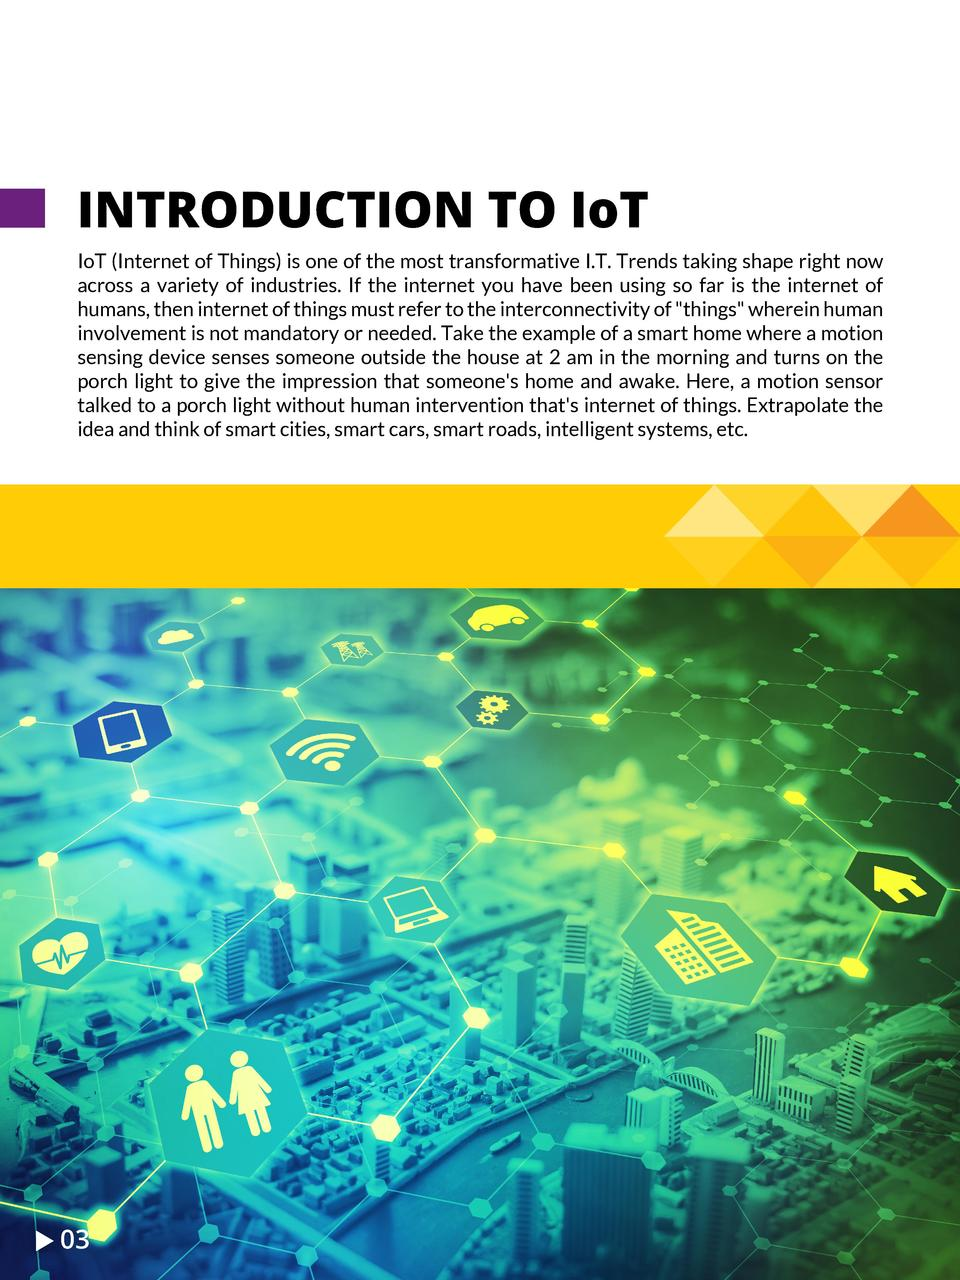 INTRODUCTION TO IoT IoT  Internet of Things  is one of the most transformative I.T. Trends taking shape right now across a...